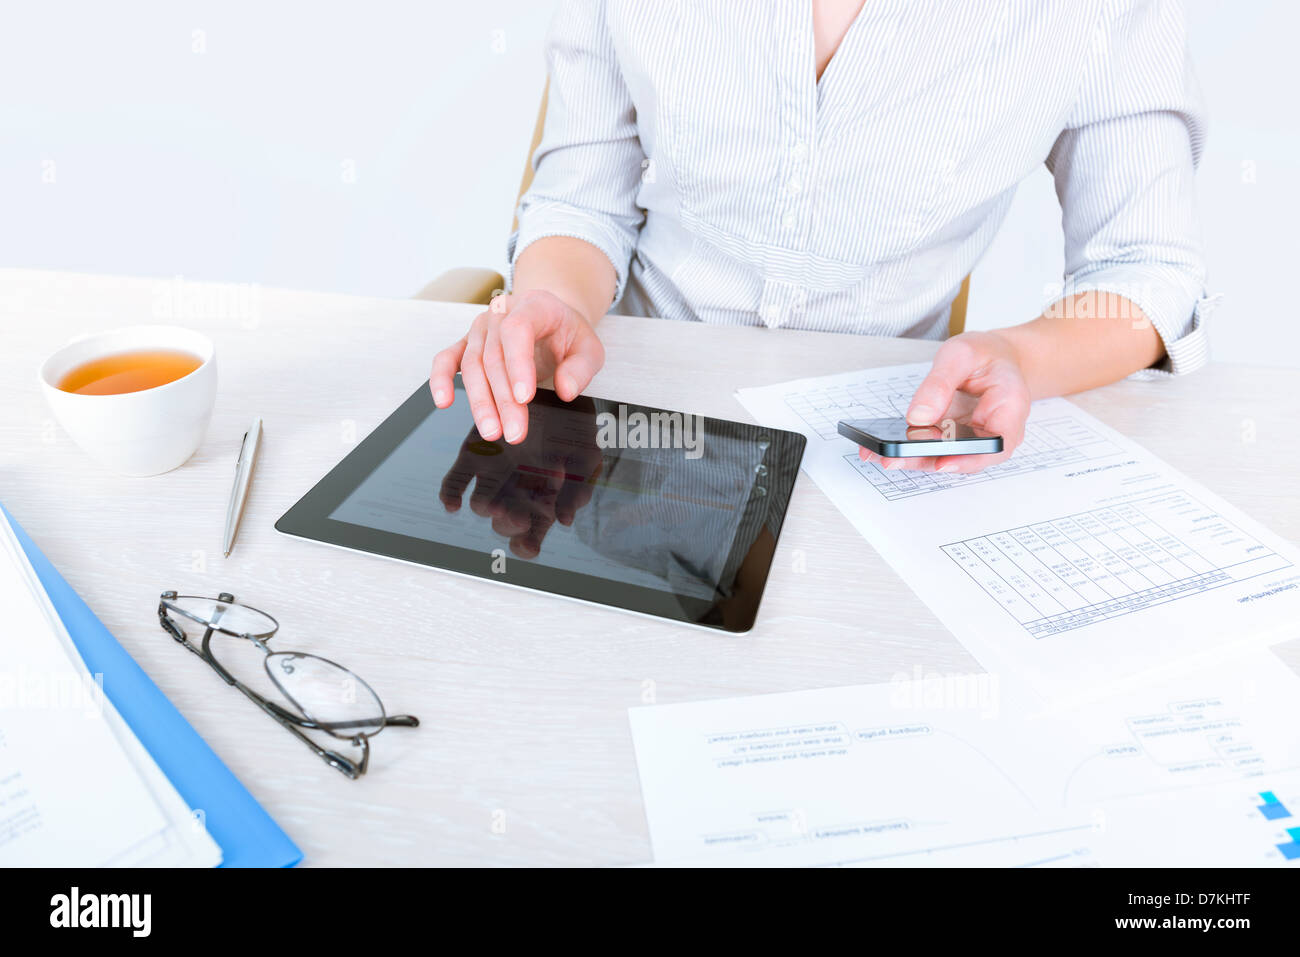 Successful businesswoman sitting at desk and simultaneously using modern devices for business communication - Stock Image